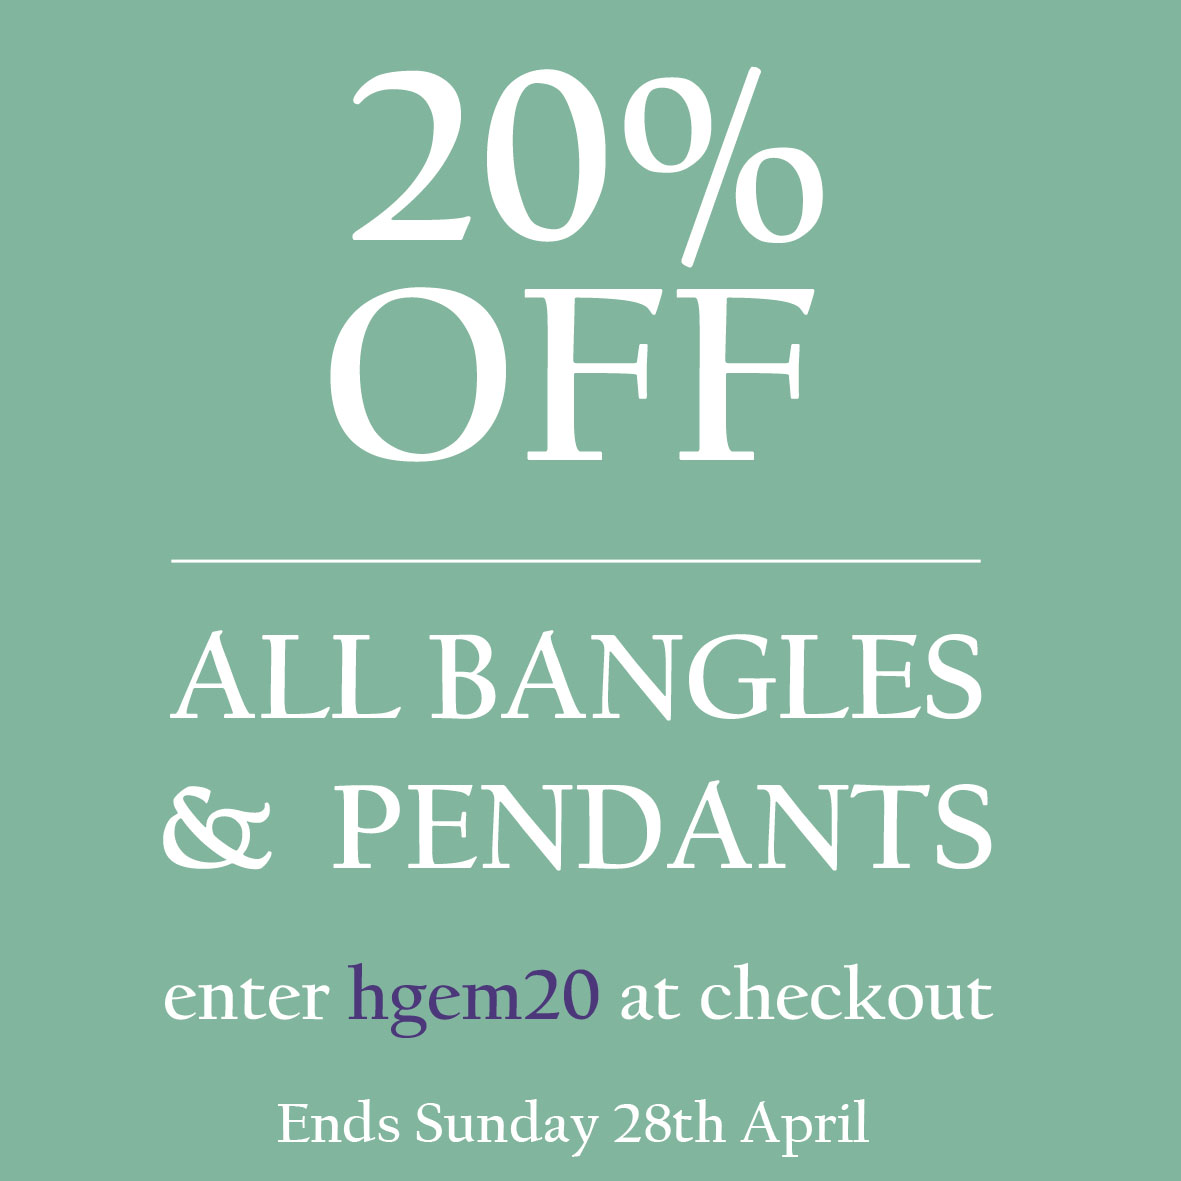 20% Off All Bangles & Pendants - Ends Sunday 28th April